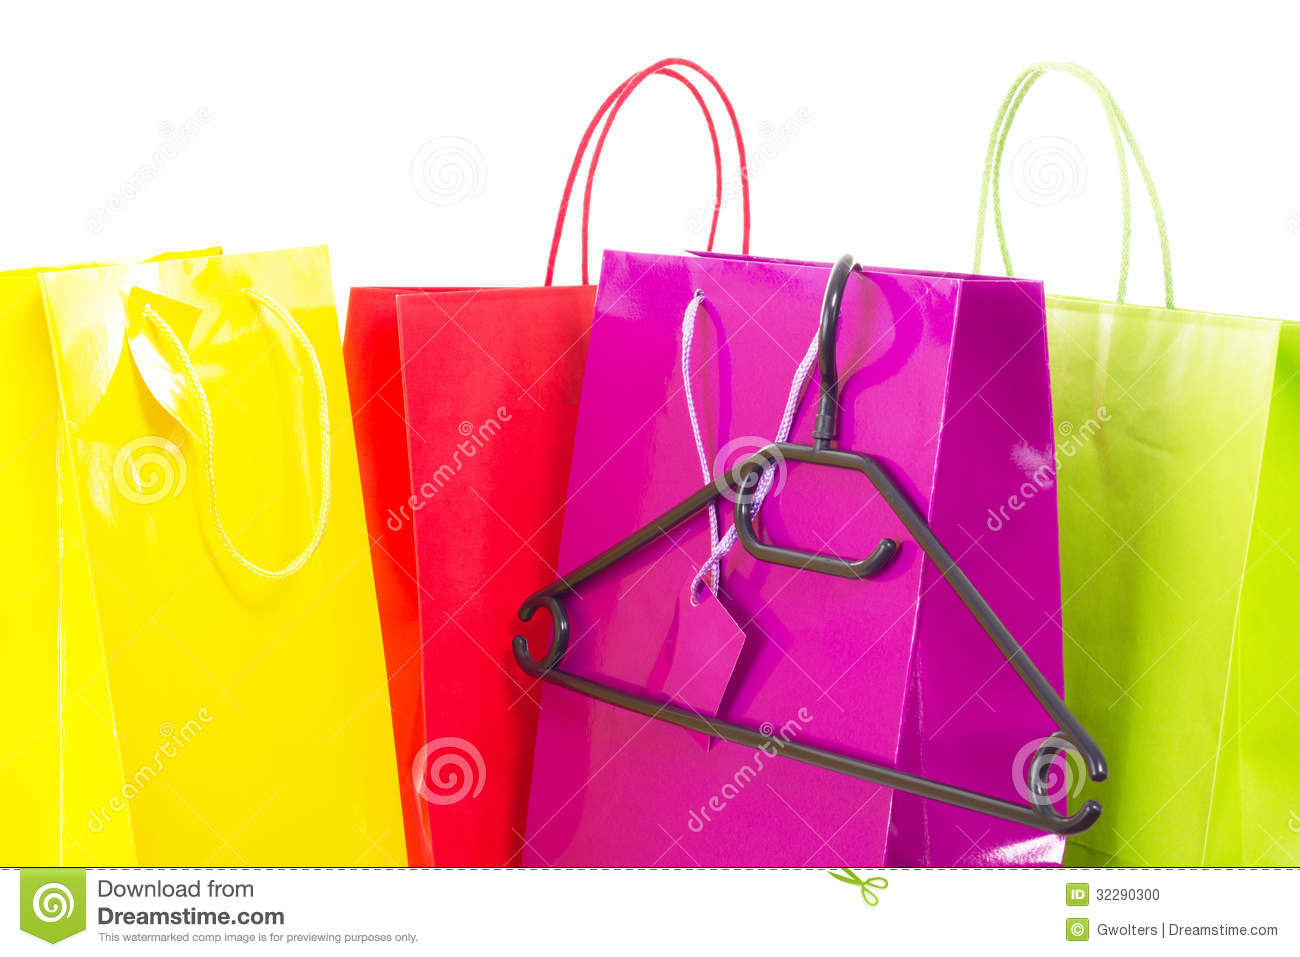 Shopping Bags With Clothes Hanger Stock Photo - Image: 32290300